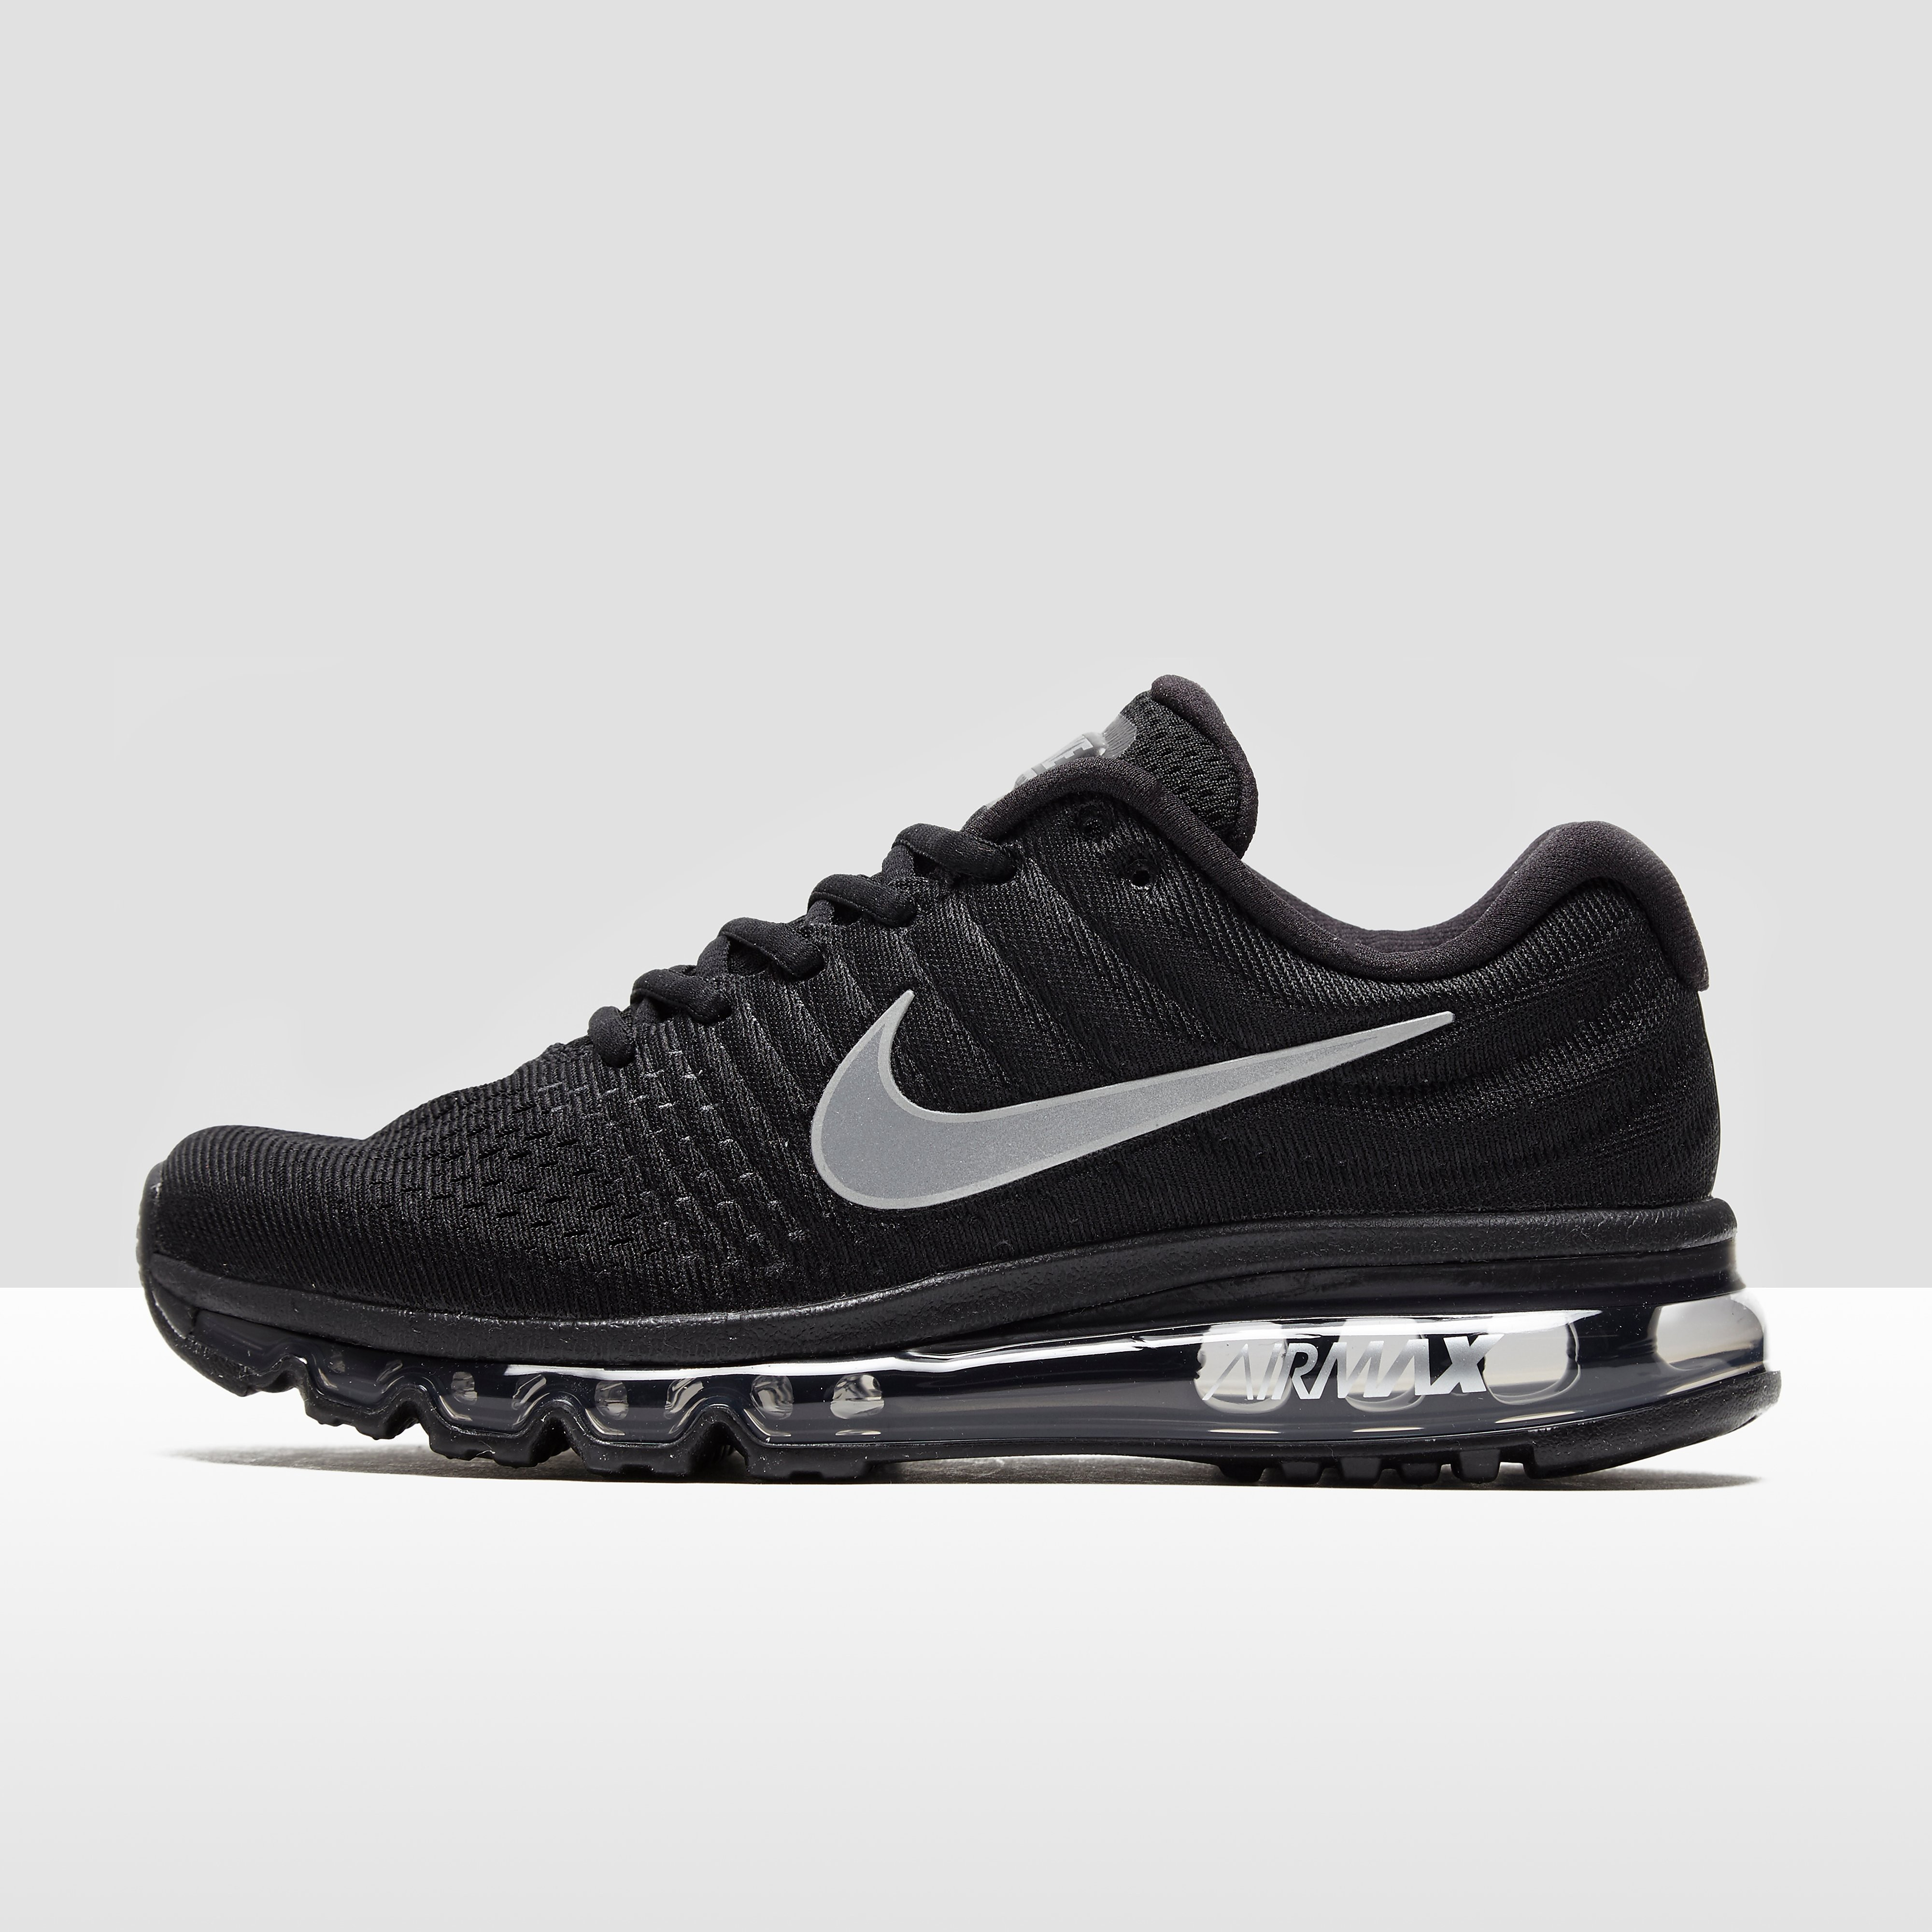 Nike Air Max 2017 Women's Running Shoes